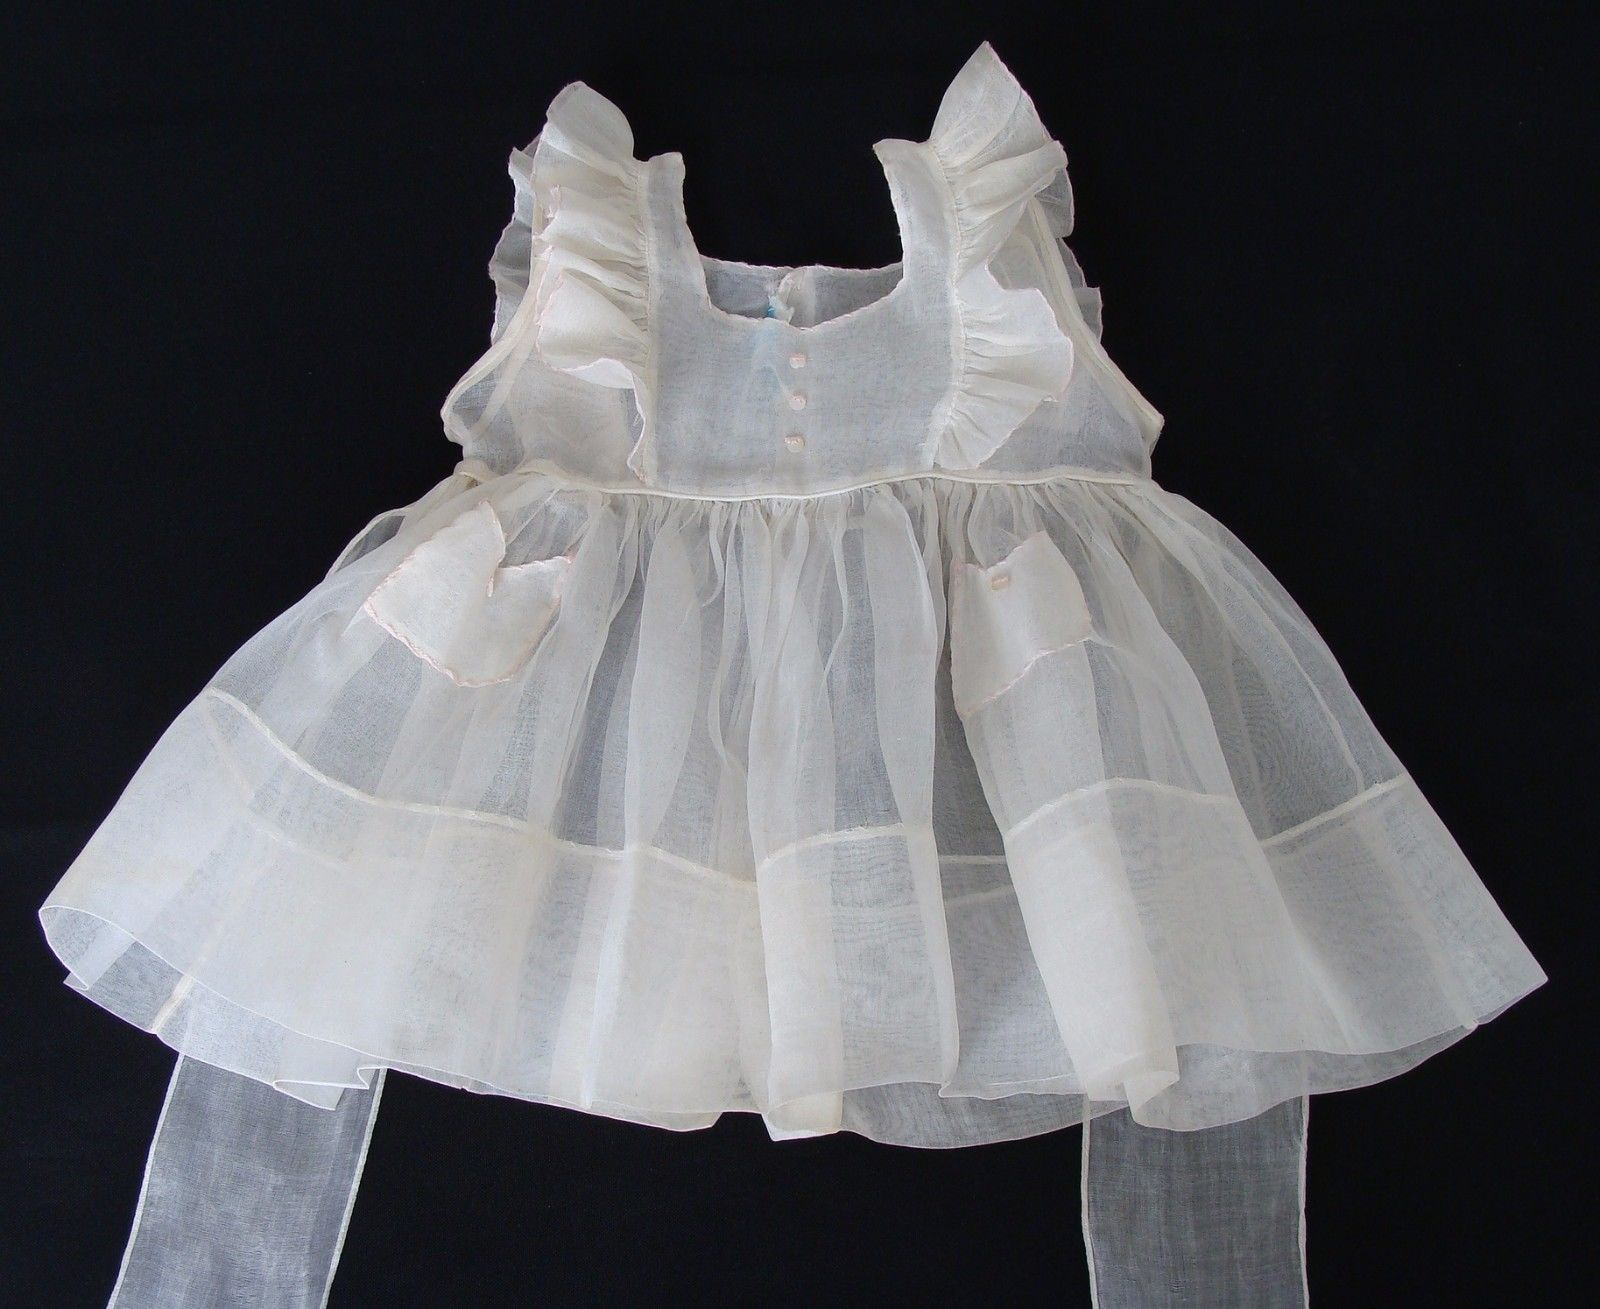 Vintage 1950s Sheer Cotton Organdy Girls Pinafore Dress A by.